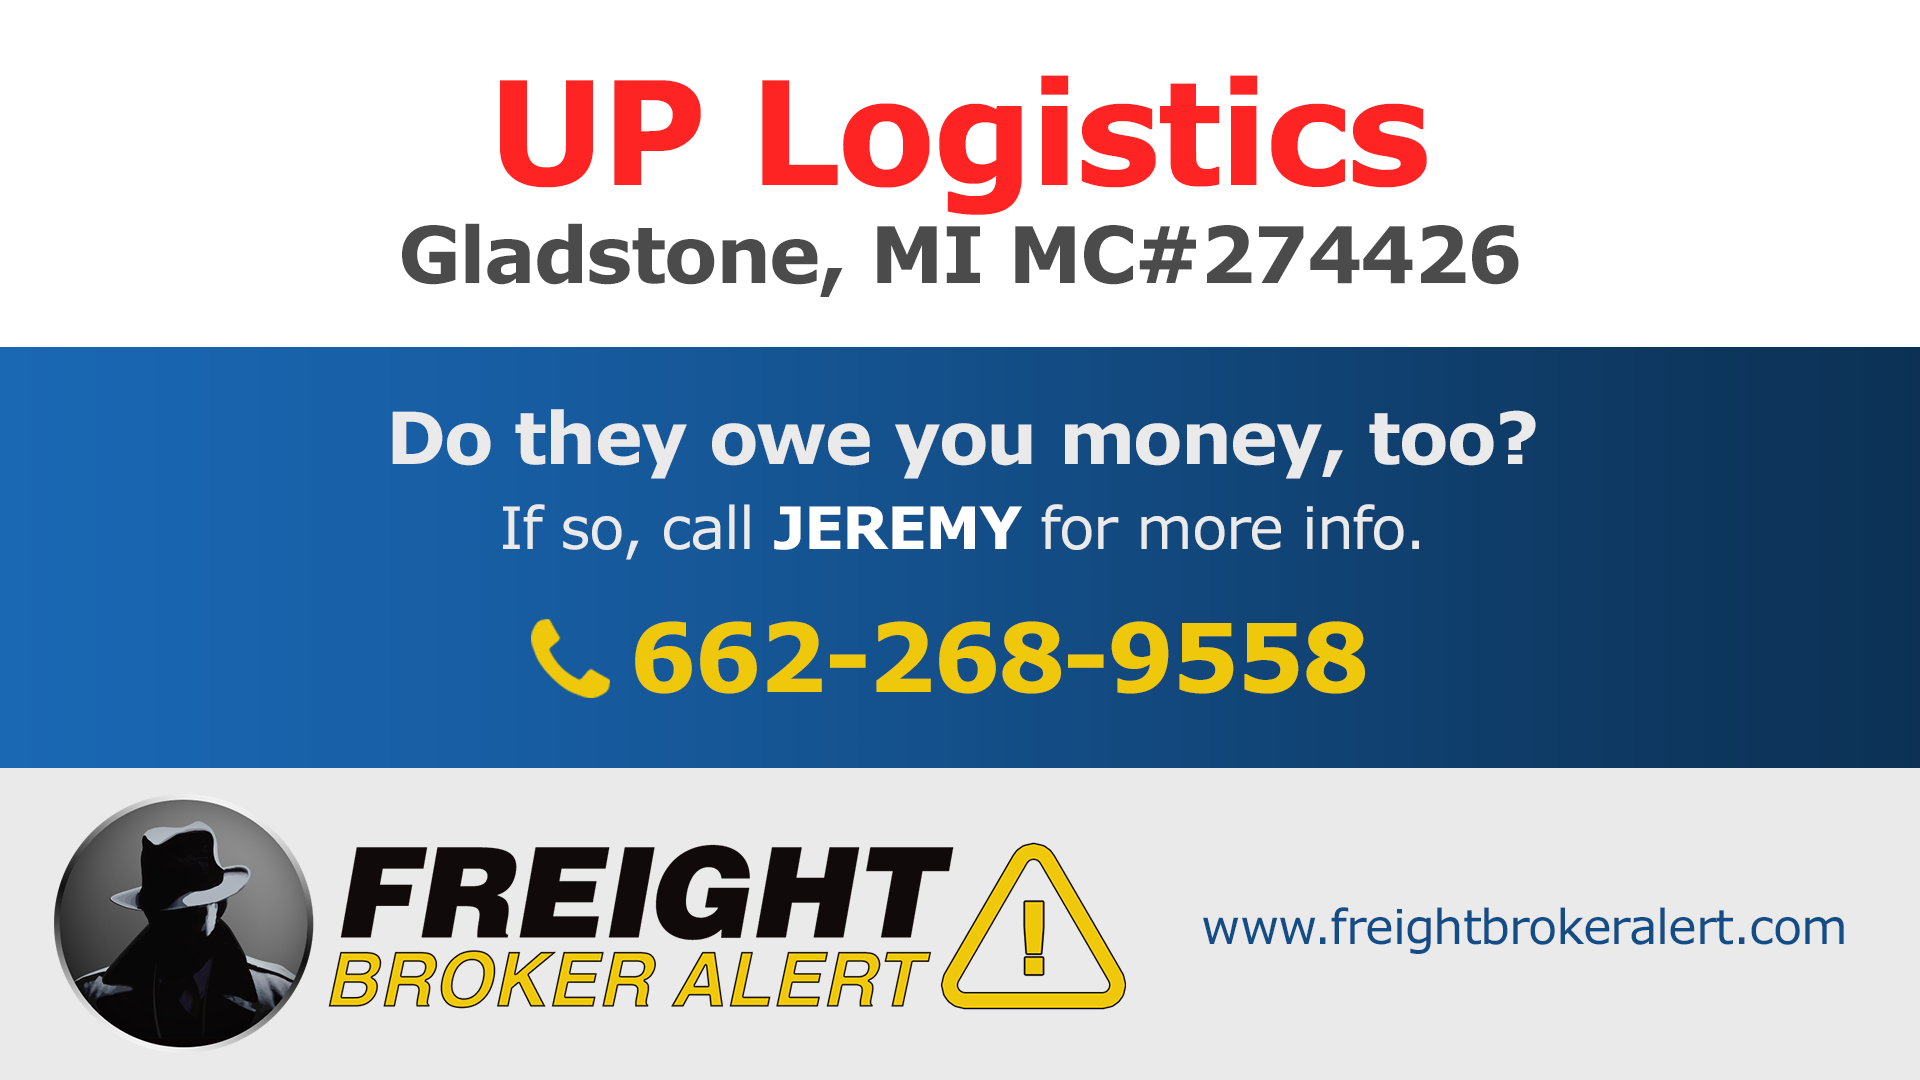 UP Logistics Michigan